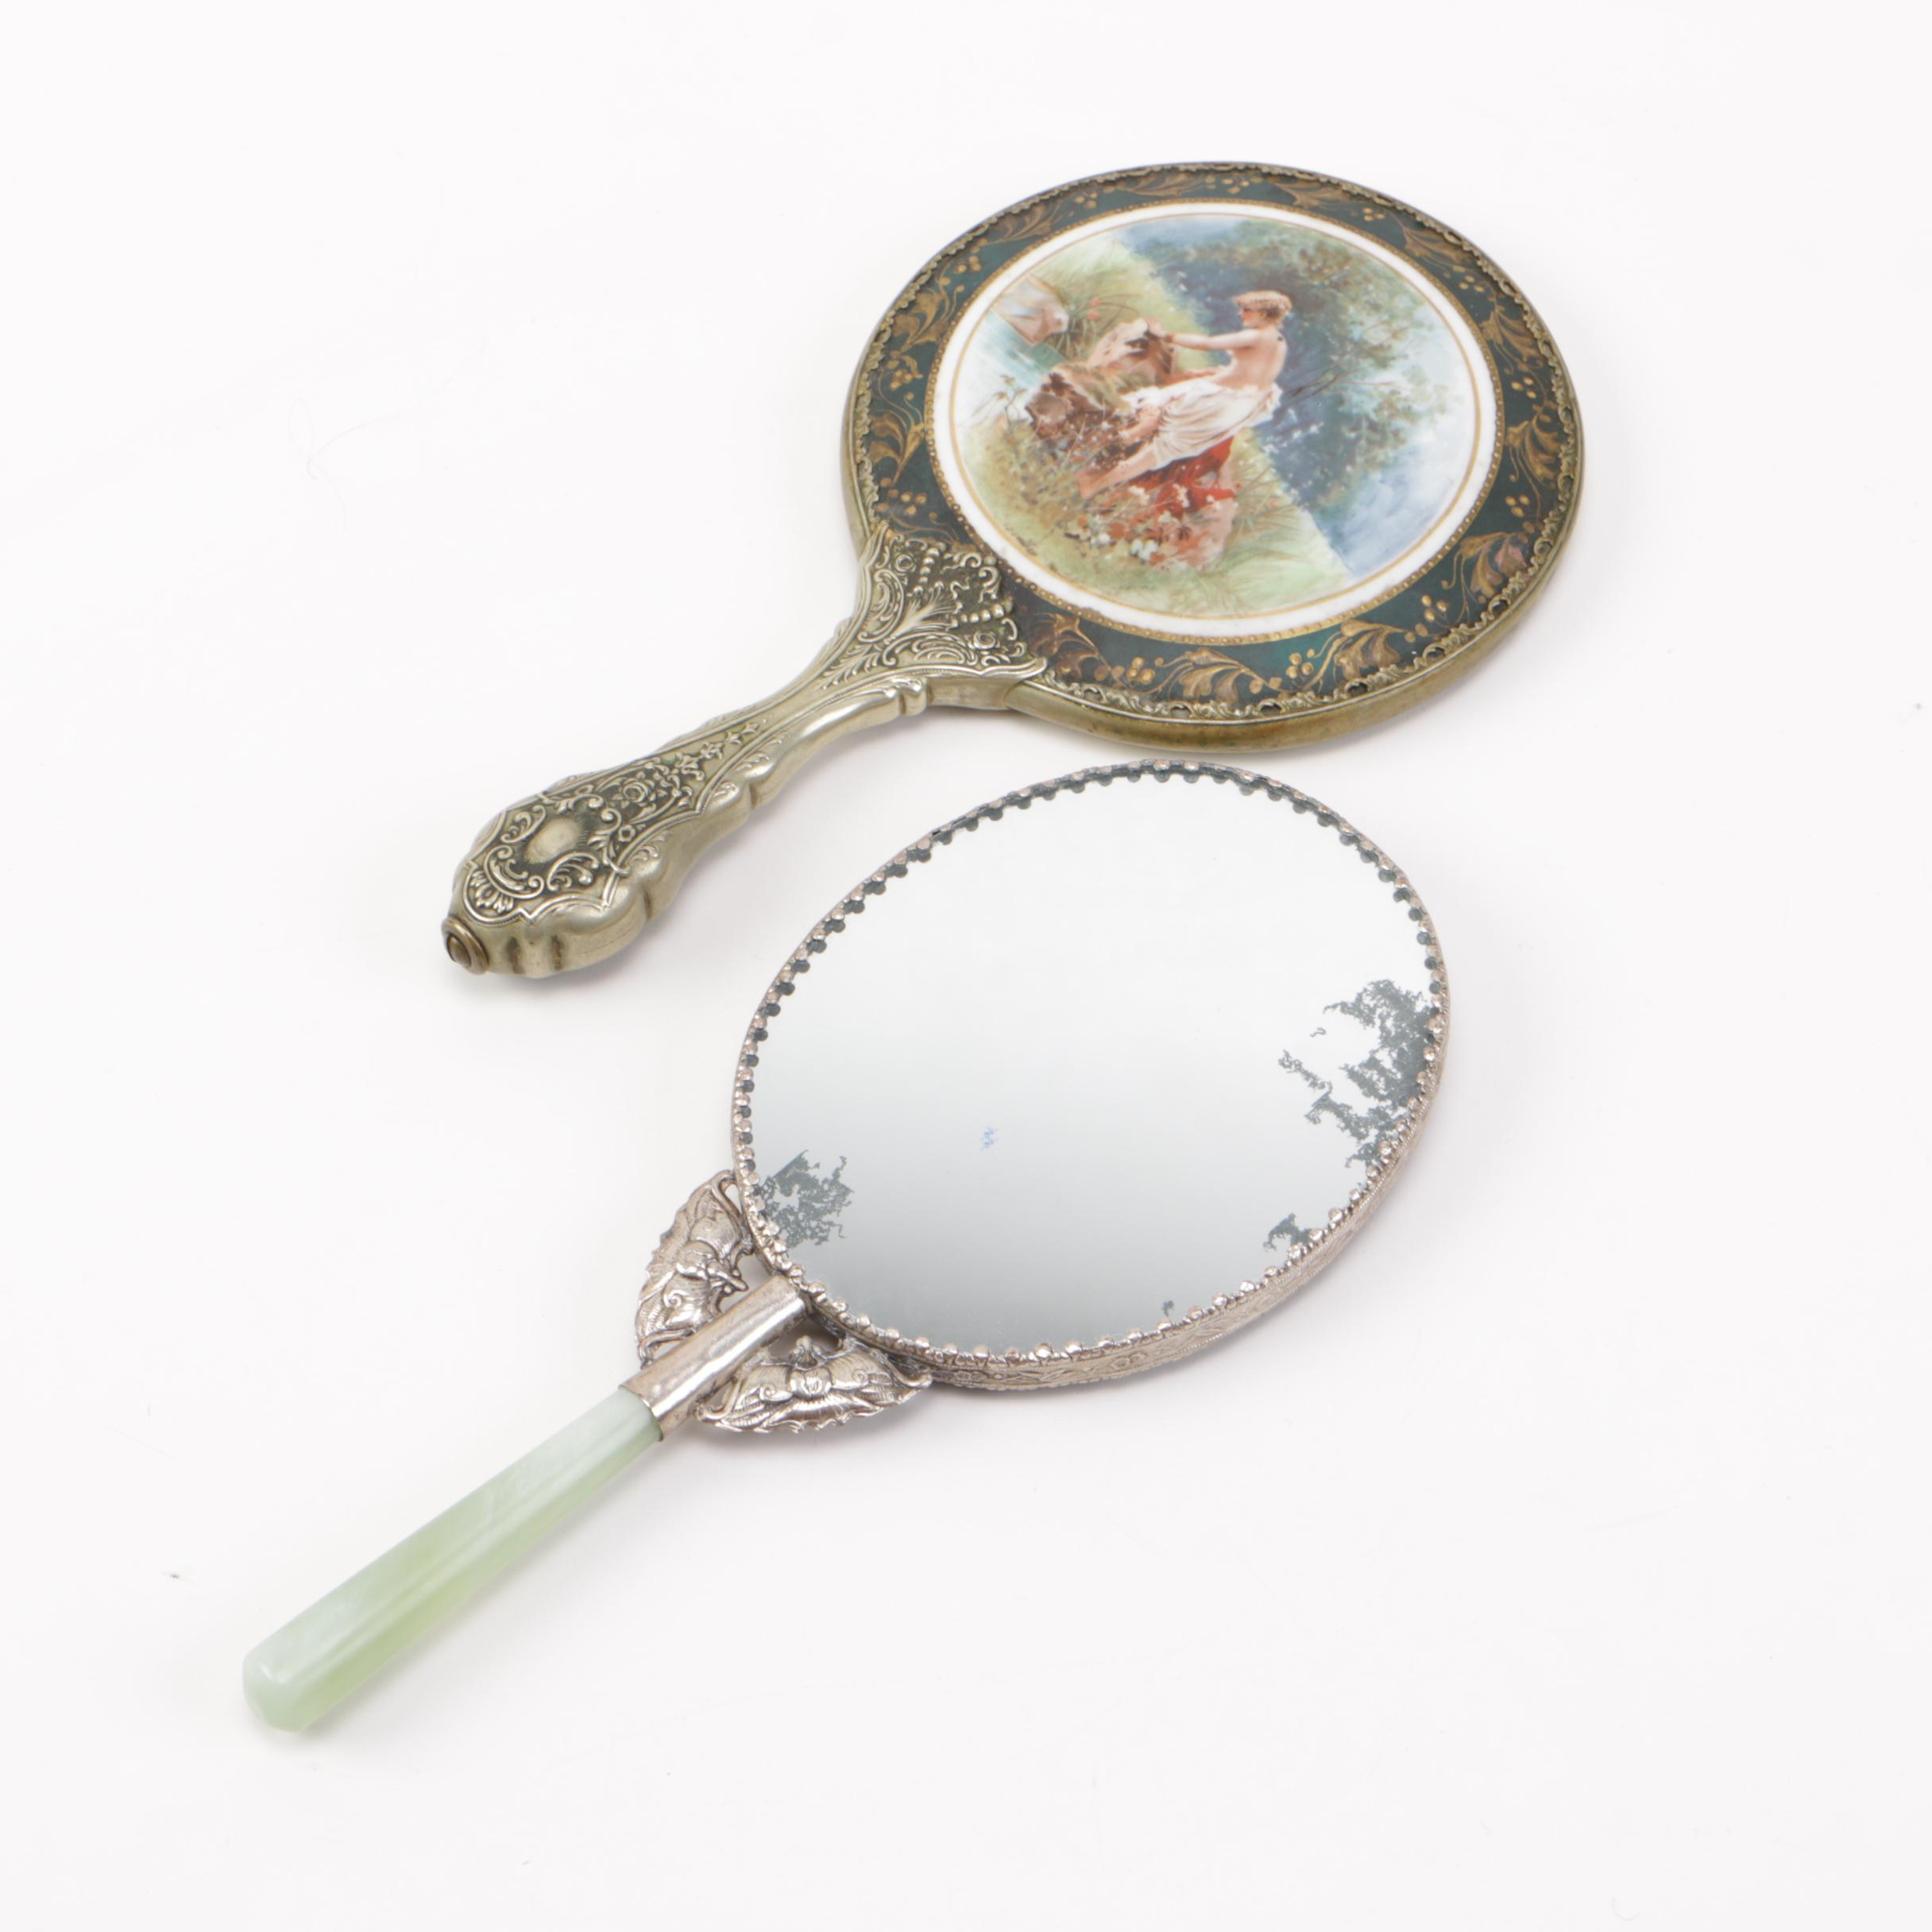 Ornate hand mirror drawing 18th Century Victorian Era Ornate Hand Mirrors With Sterling Silver Jpg 2432x2432 Ornate Hand Mirror Drawing Mungfali Ornate Hand Mirror Drawing Wwwtopsimagescom